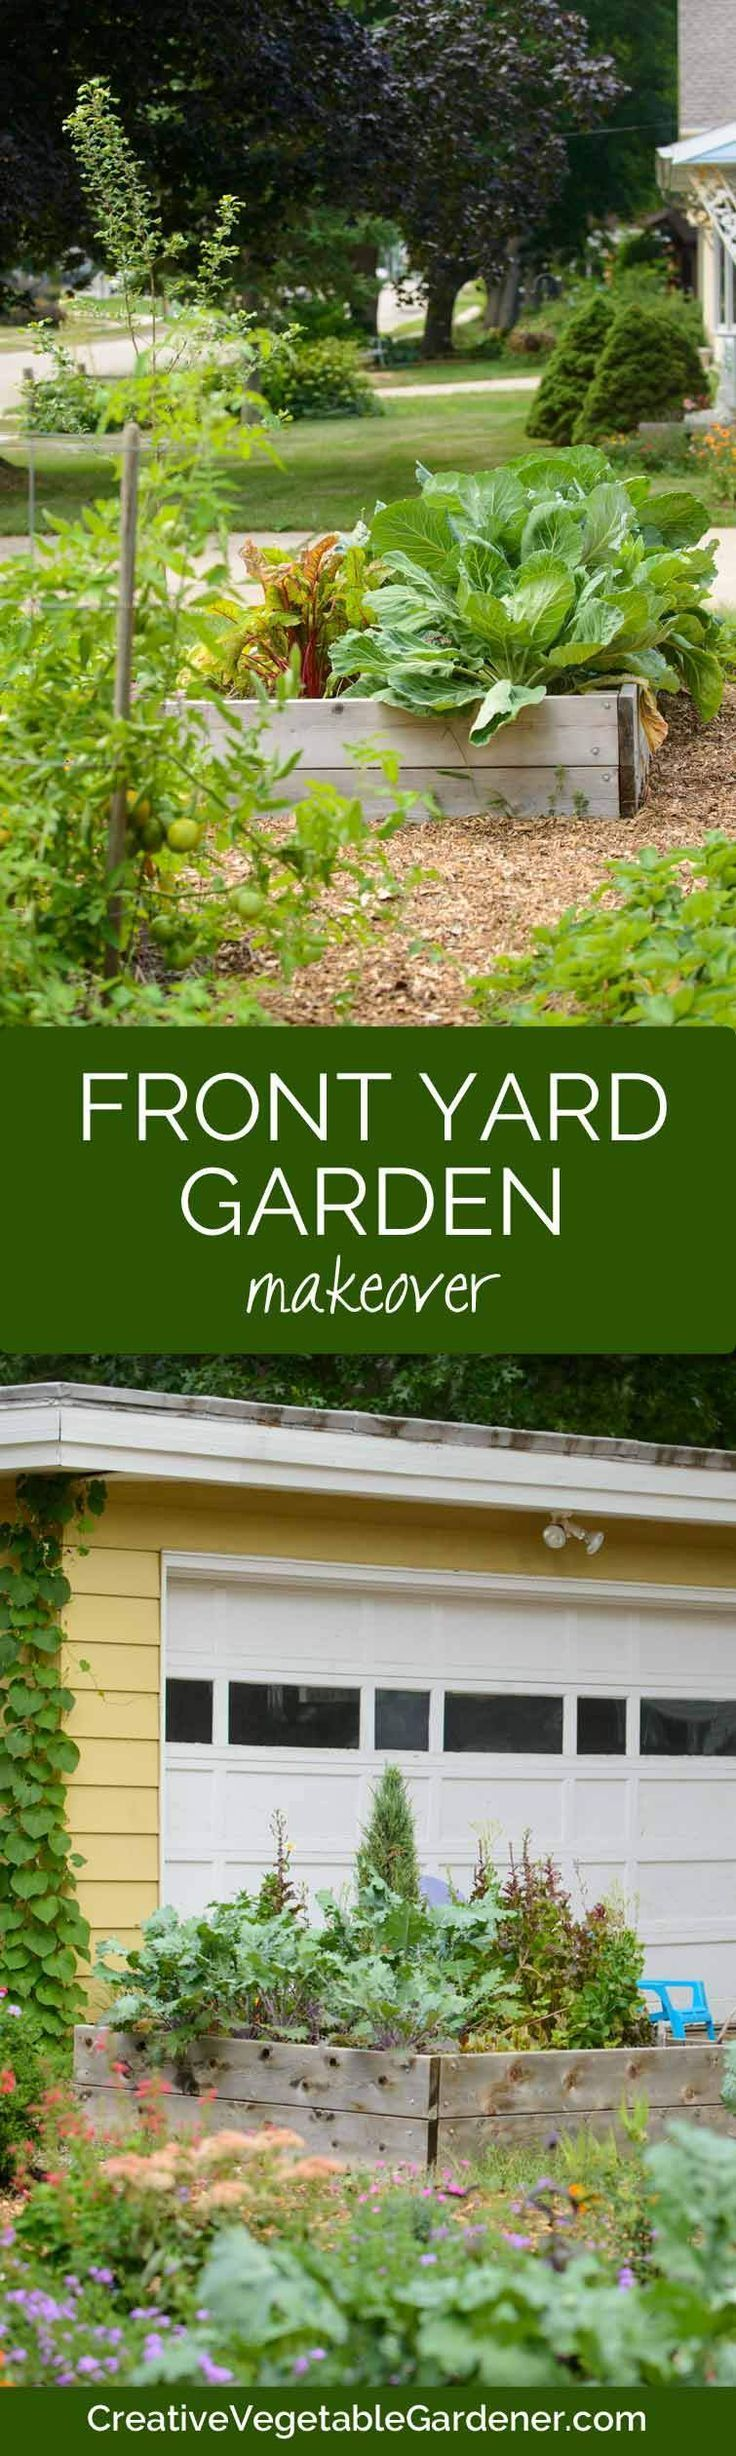 From Front Yard to Food Yard – Organic Gardening Ideas